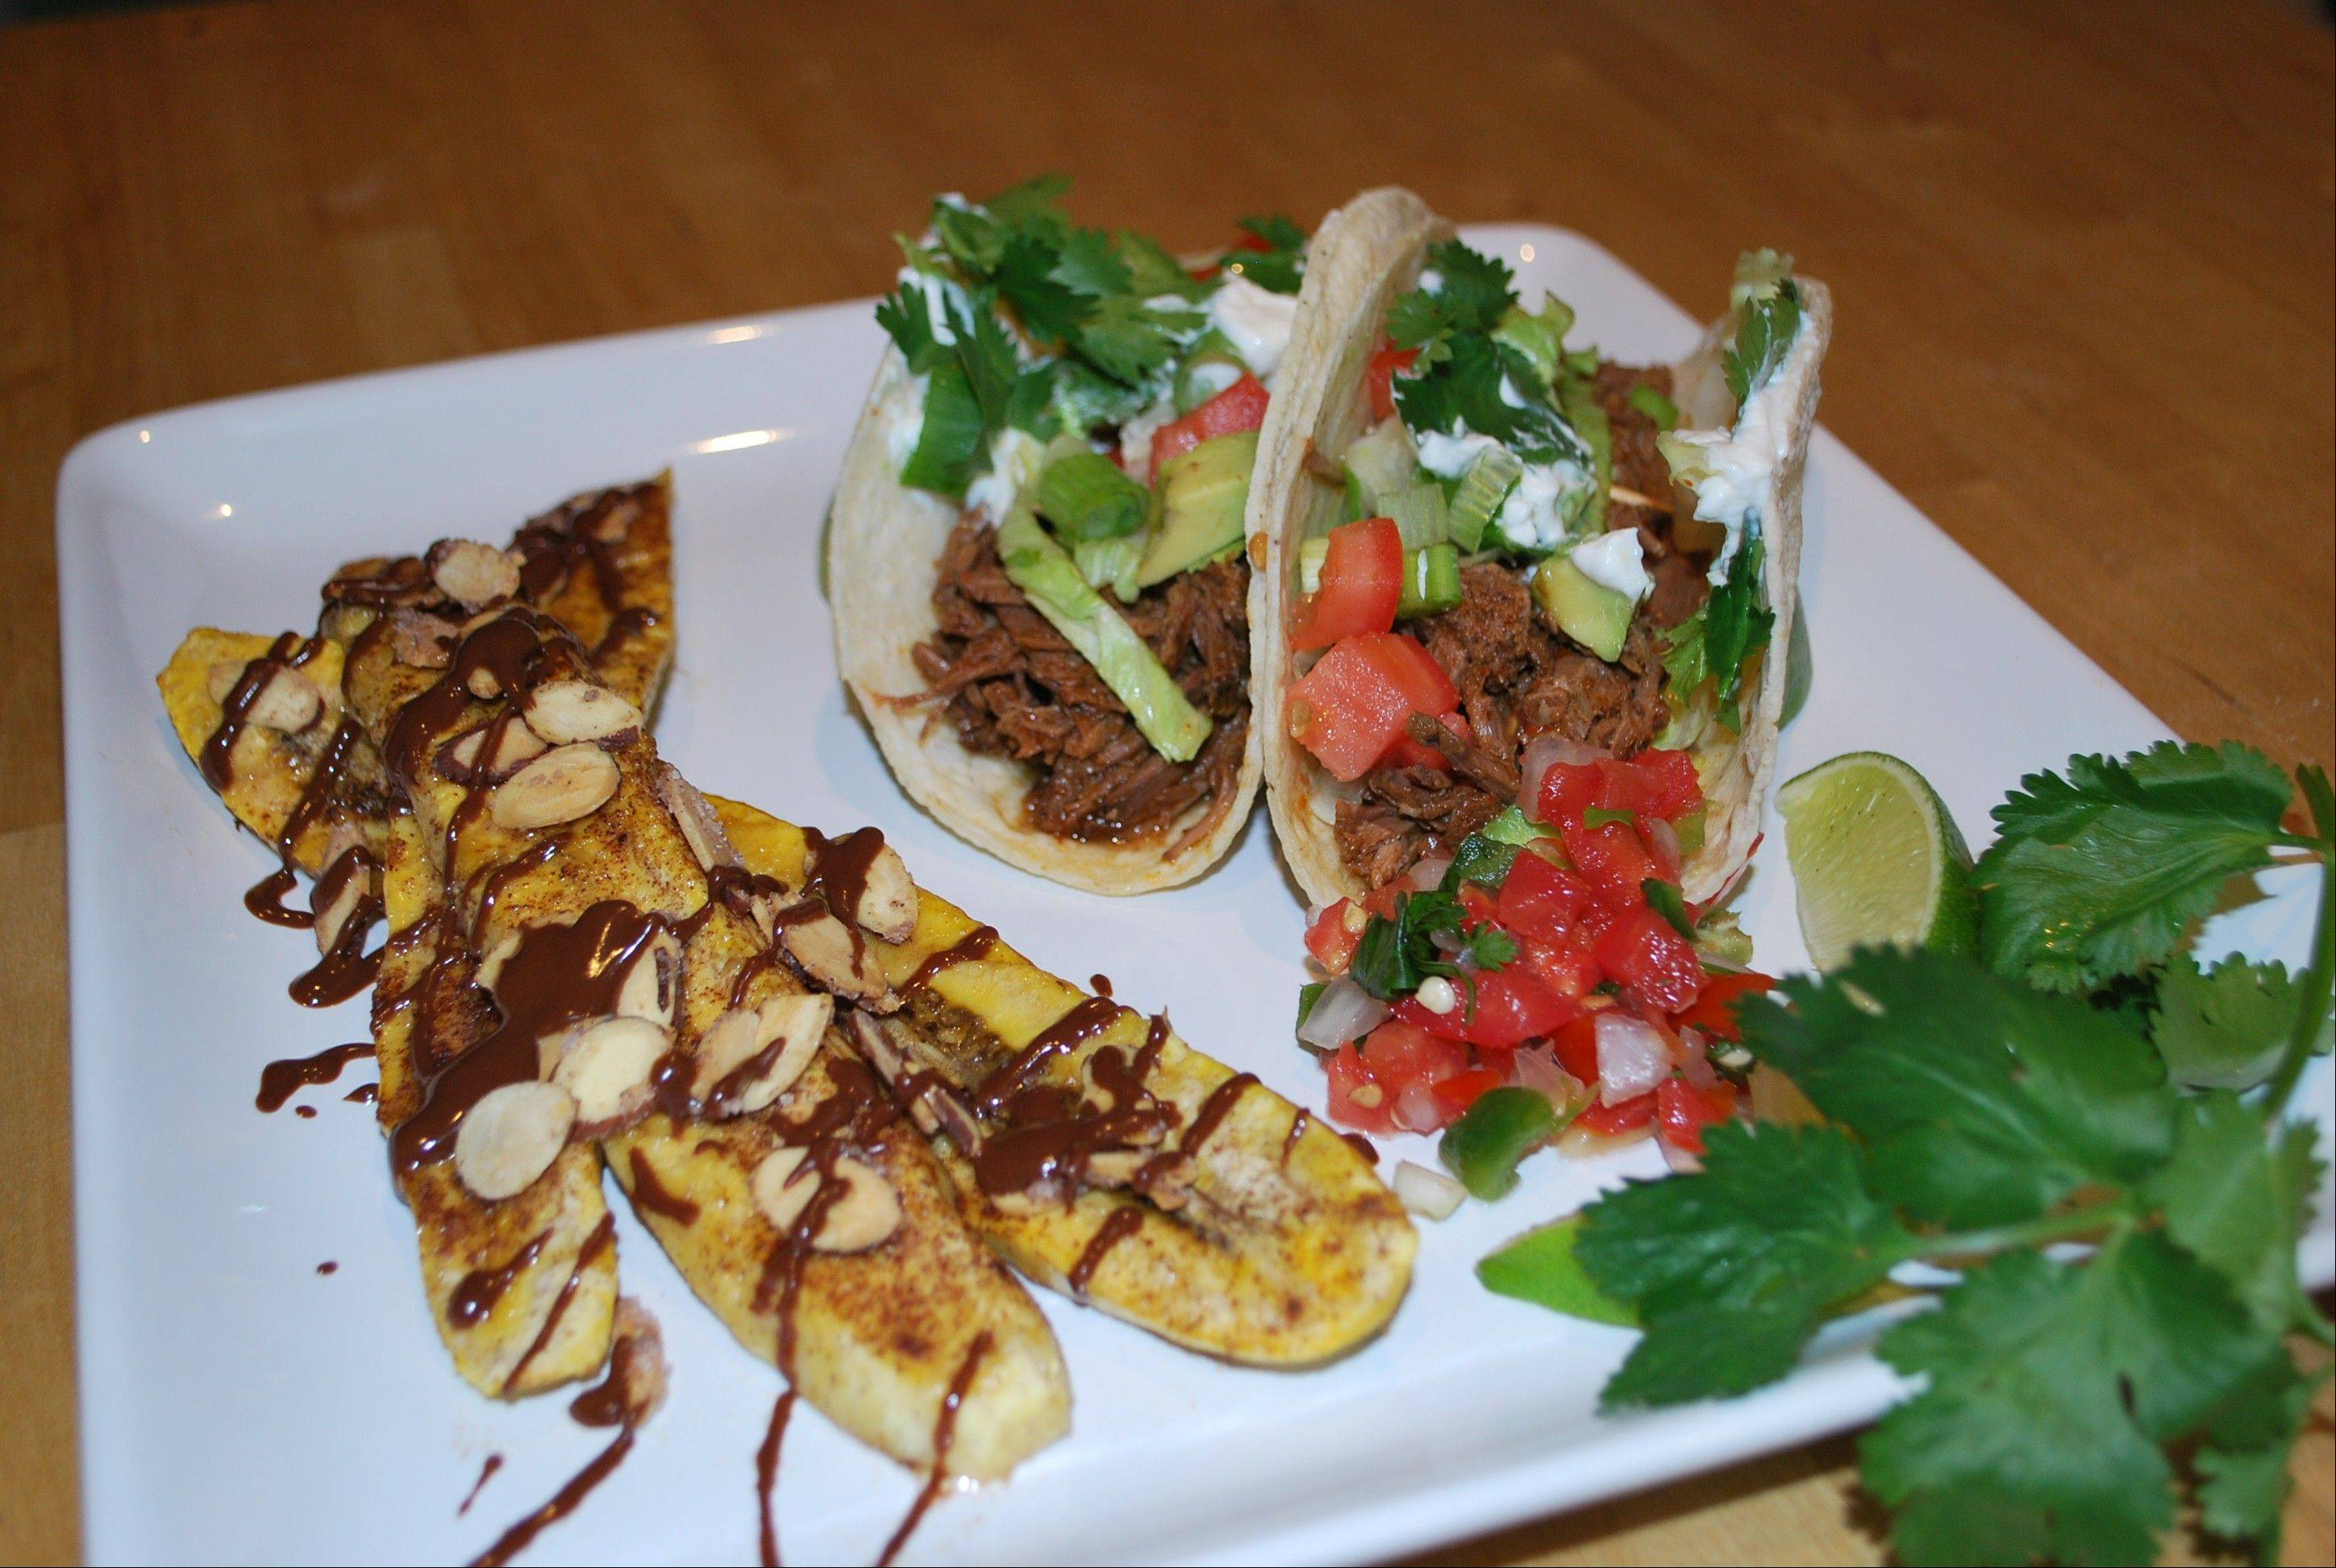 Katie Bloomfield slow-cooked a tri-tip roast to make tacos and serves them with a side of chocolate-sauced plantains.